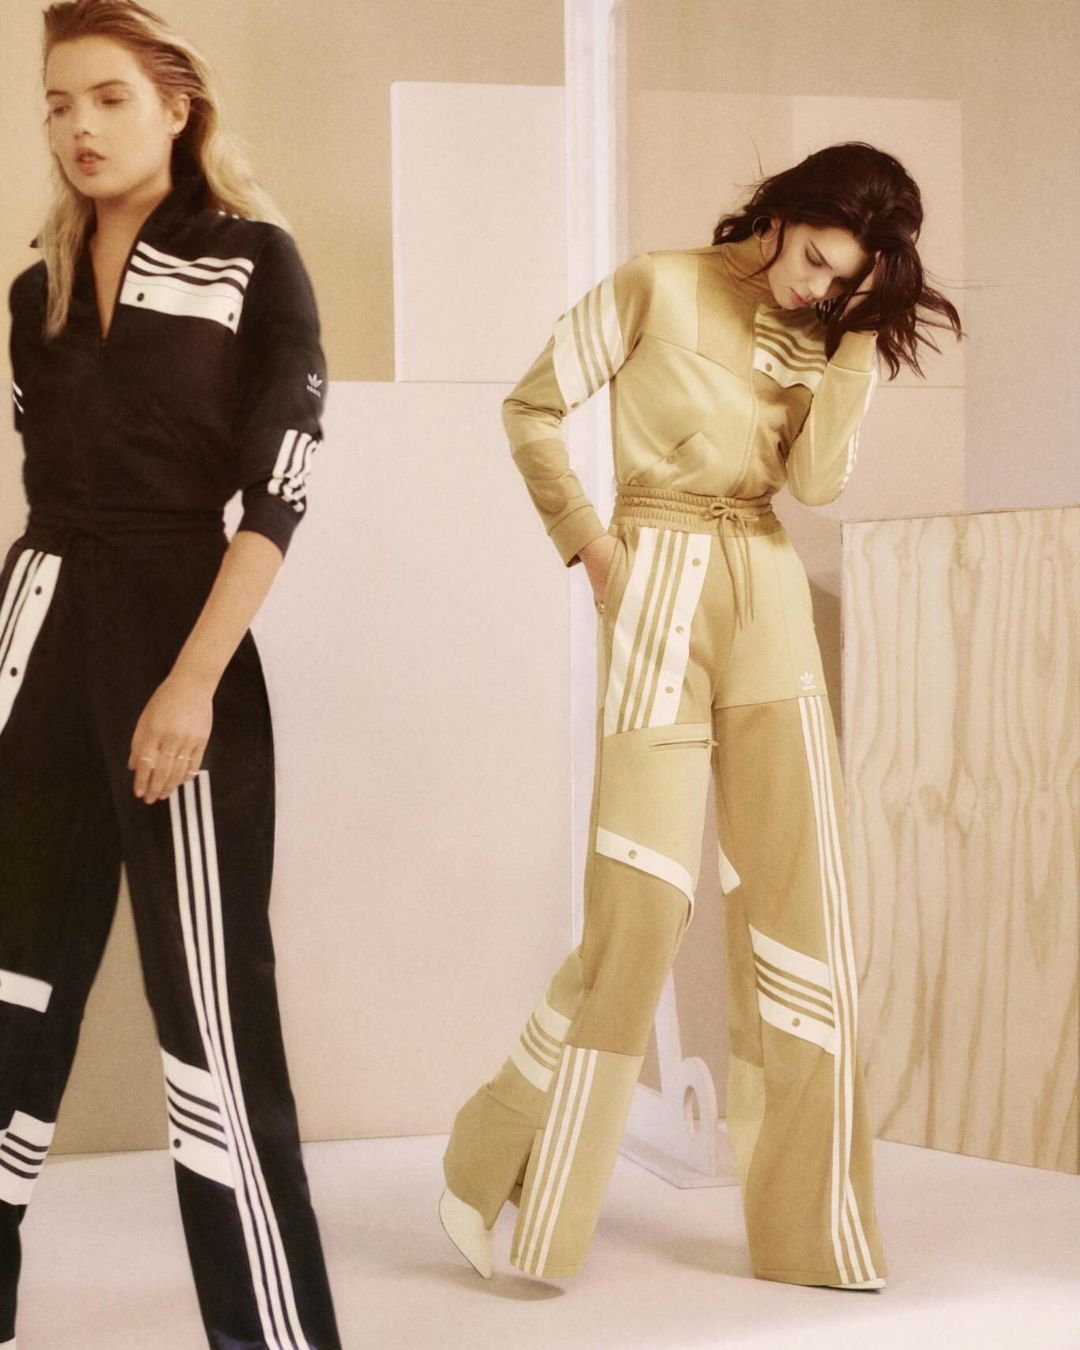 Kendall Jenner Models the Danielle Cathari x Adidas Originals Collection